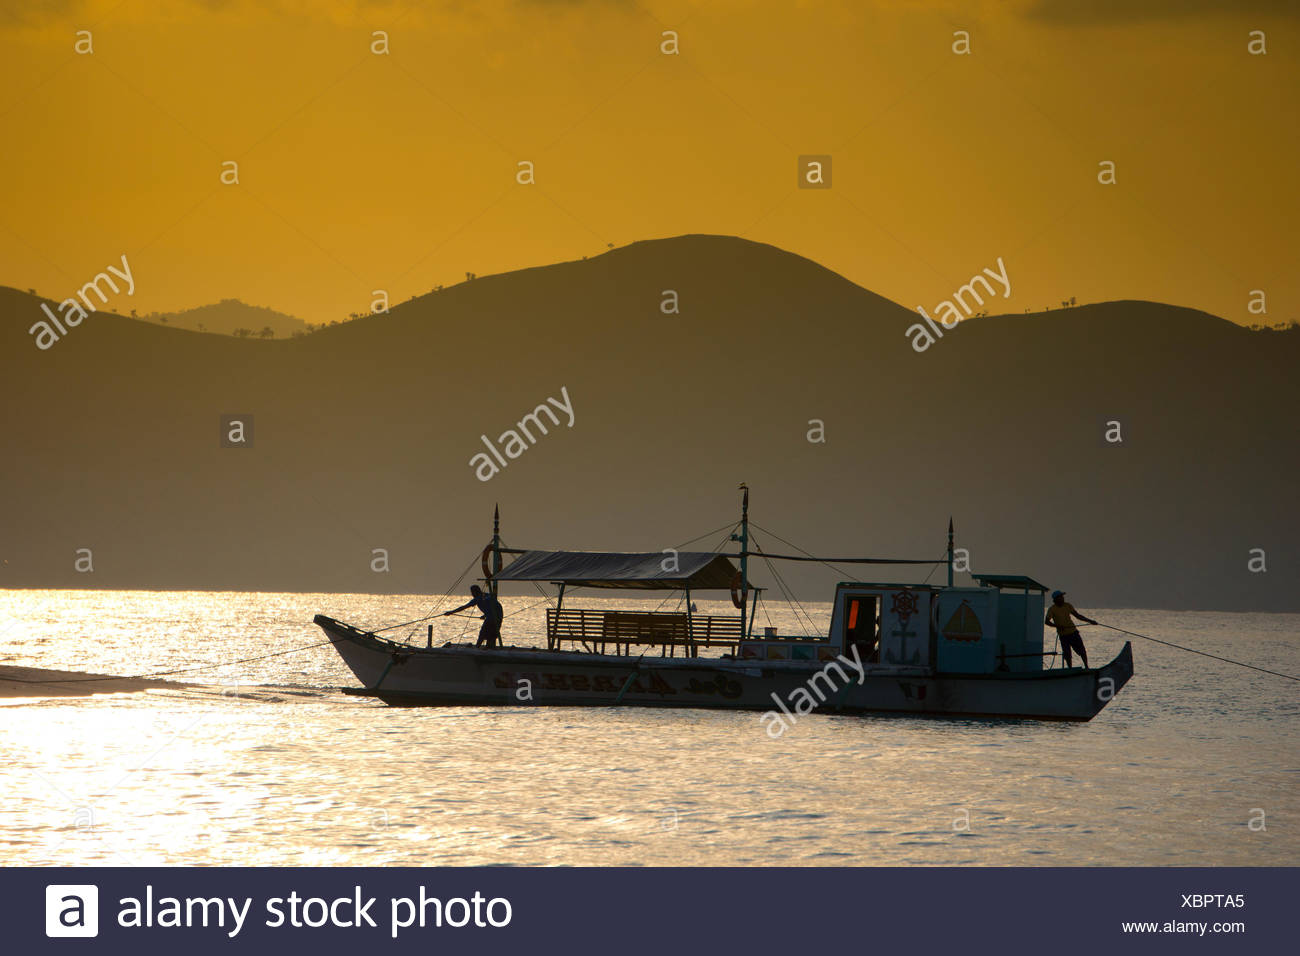 Banka, a traditional Filipino outrigger boat, anchored off the beach in the evening light, Busuanga, Philippines, Asia - Stock Image